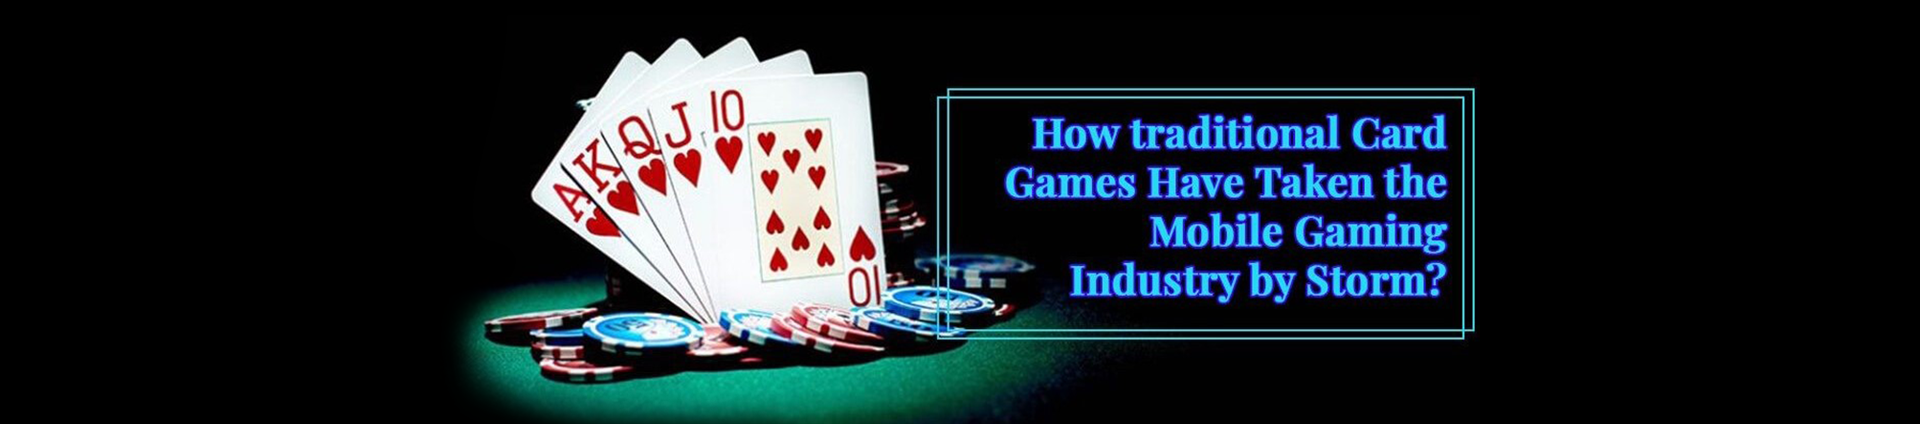 traditional card games development in the mobile gaming industry